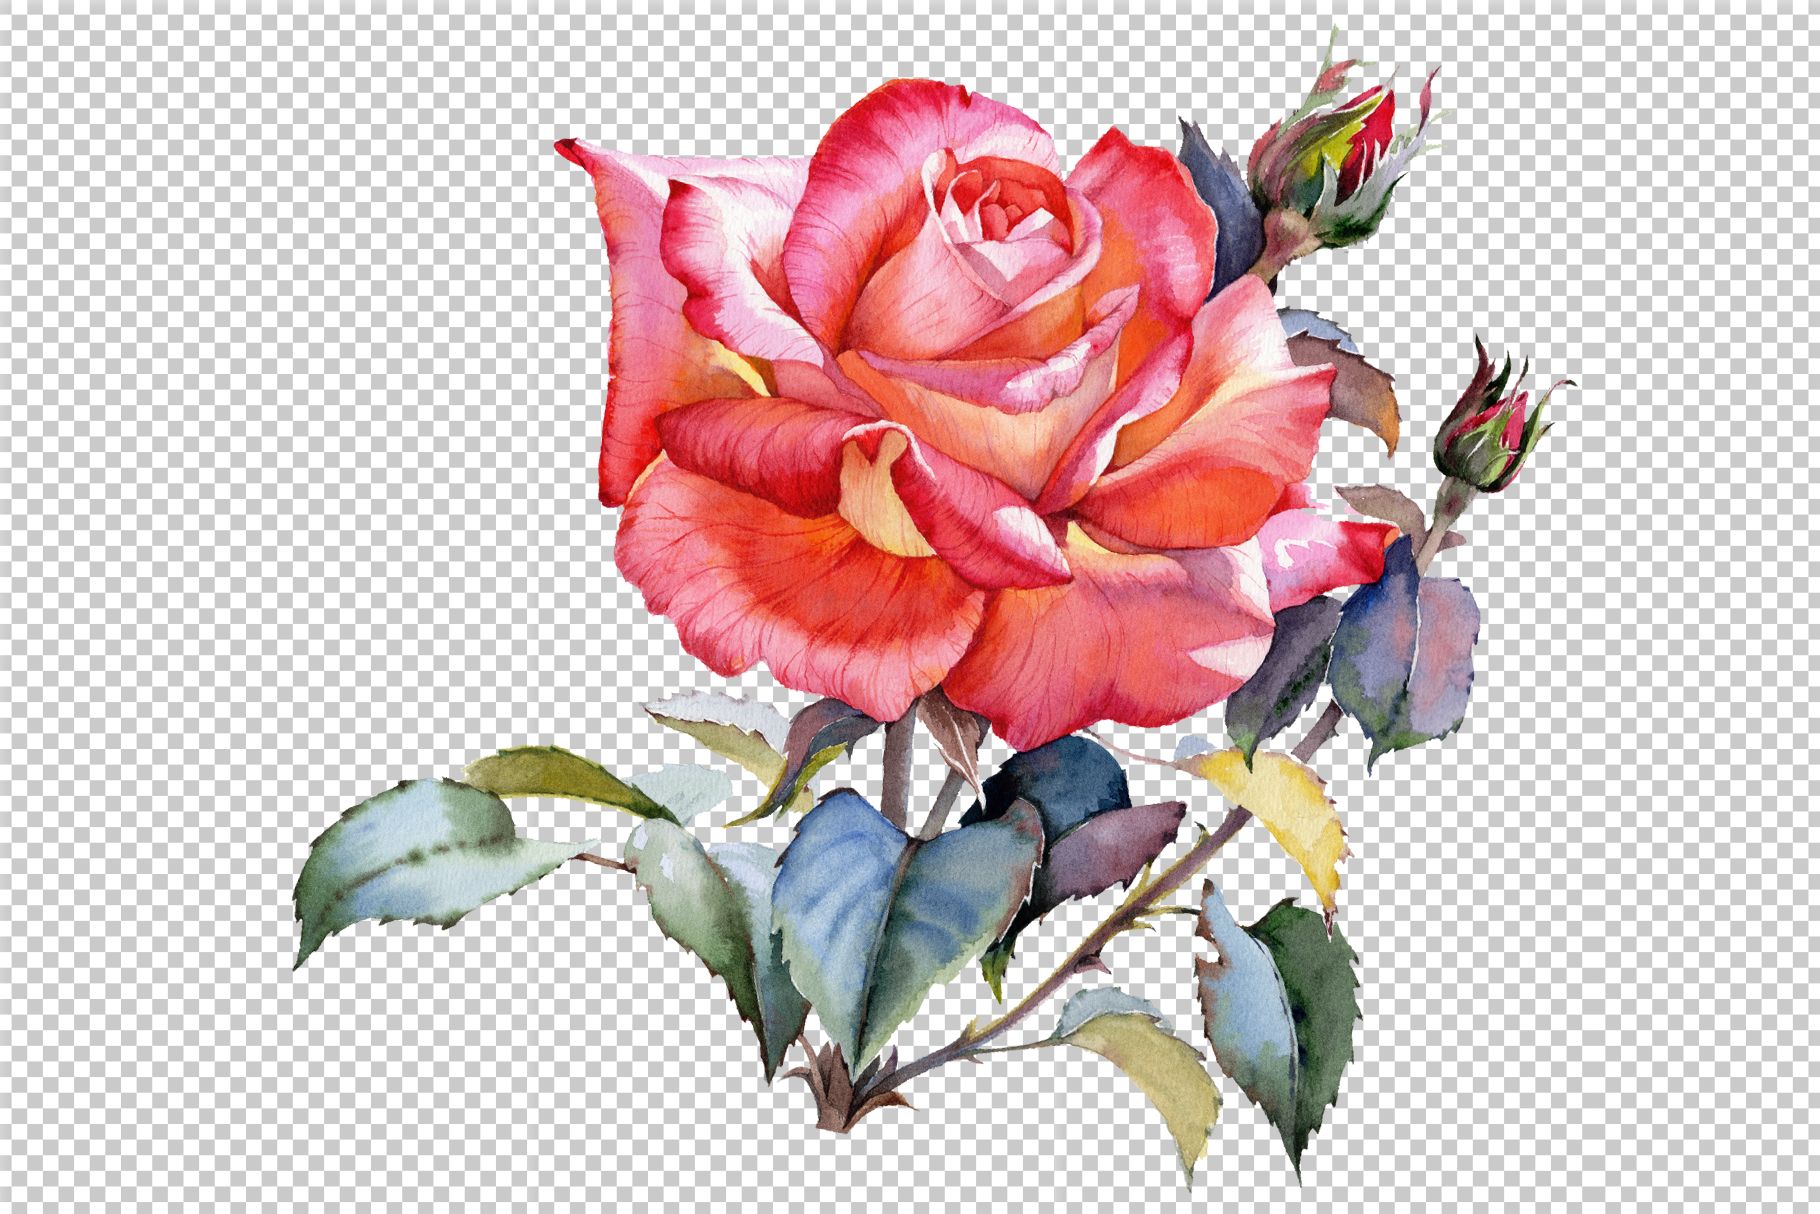 Red Rose realistic PNG watercolor set.